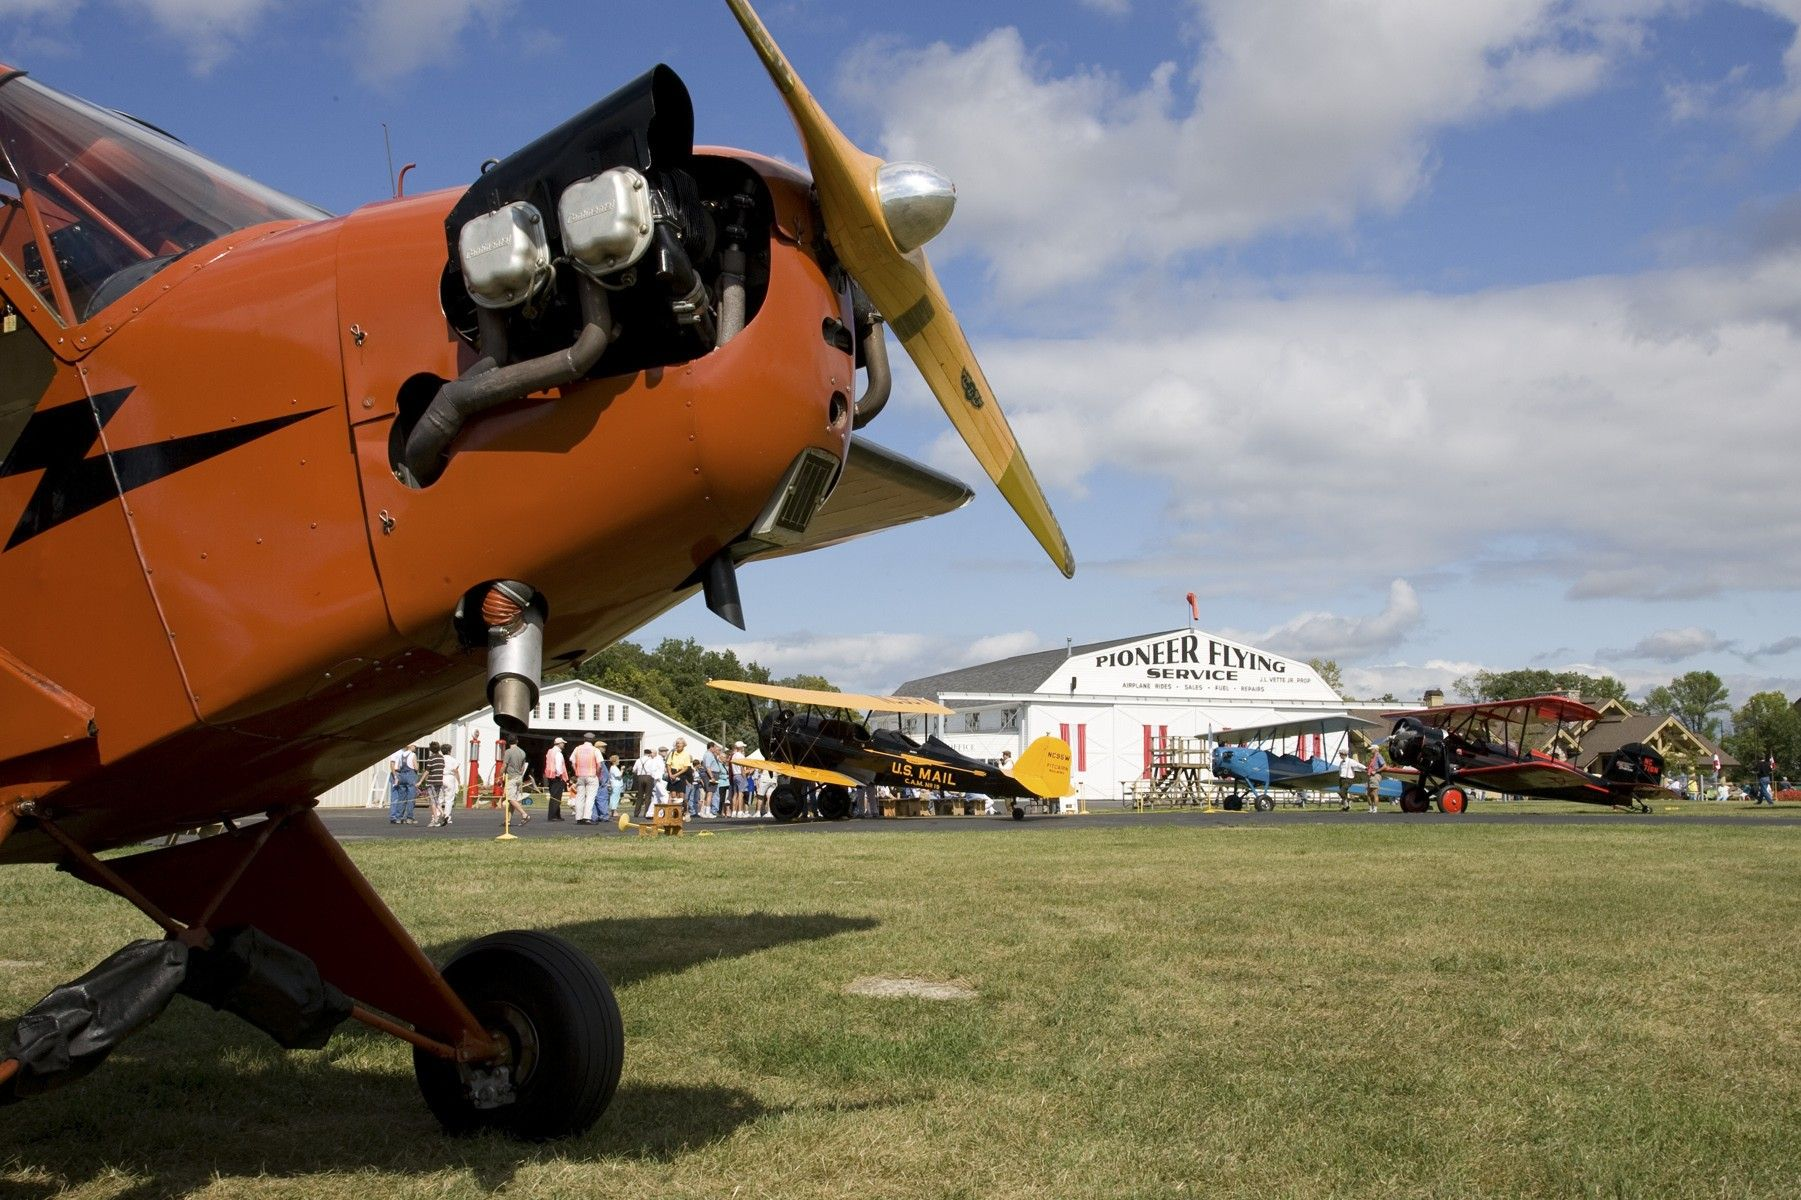 EAA AirVenture. Oshkosh, WI. Air show, Eaa, Fighter jets